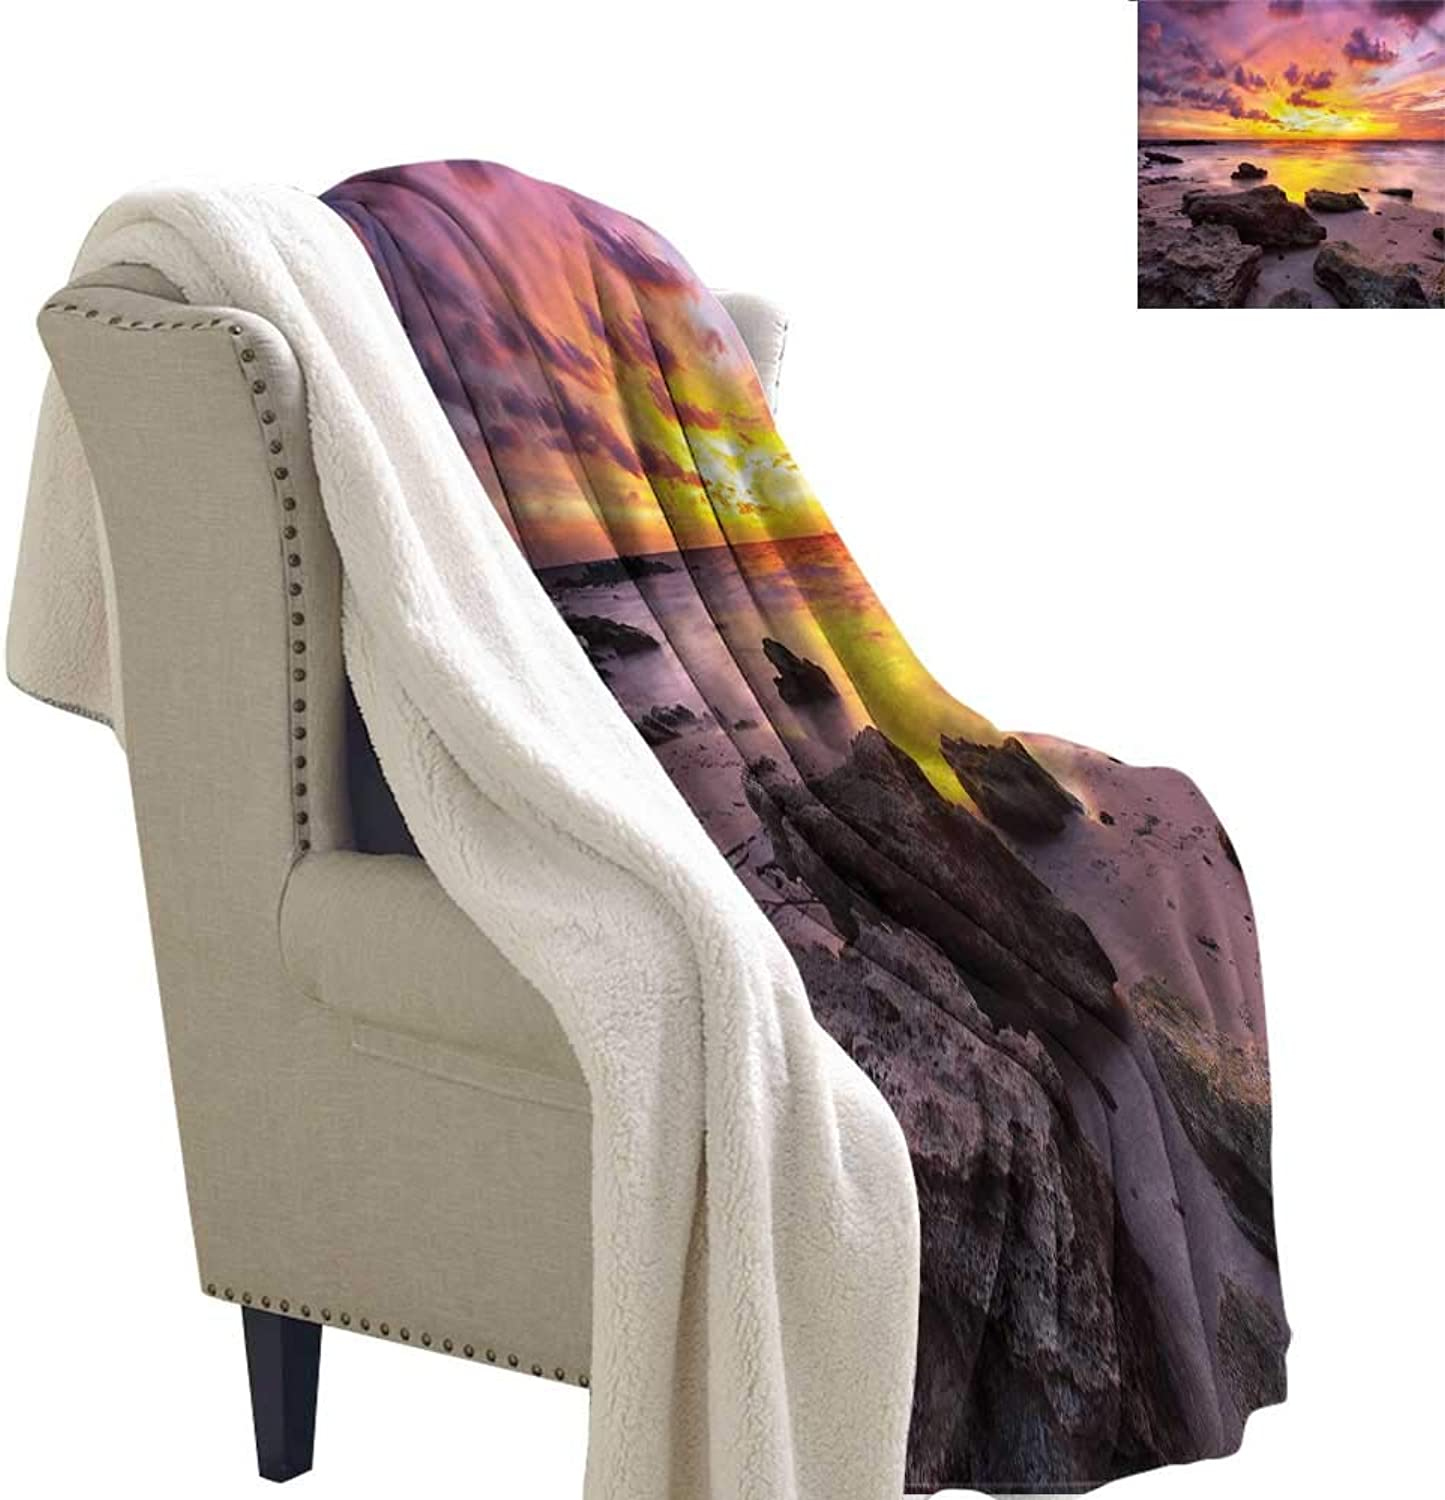 AndyTours Winter Quilt Tropical Sunset Idyllic Beach Autumn and Winter Thick Blanket W59 x L31